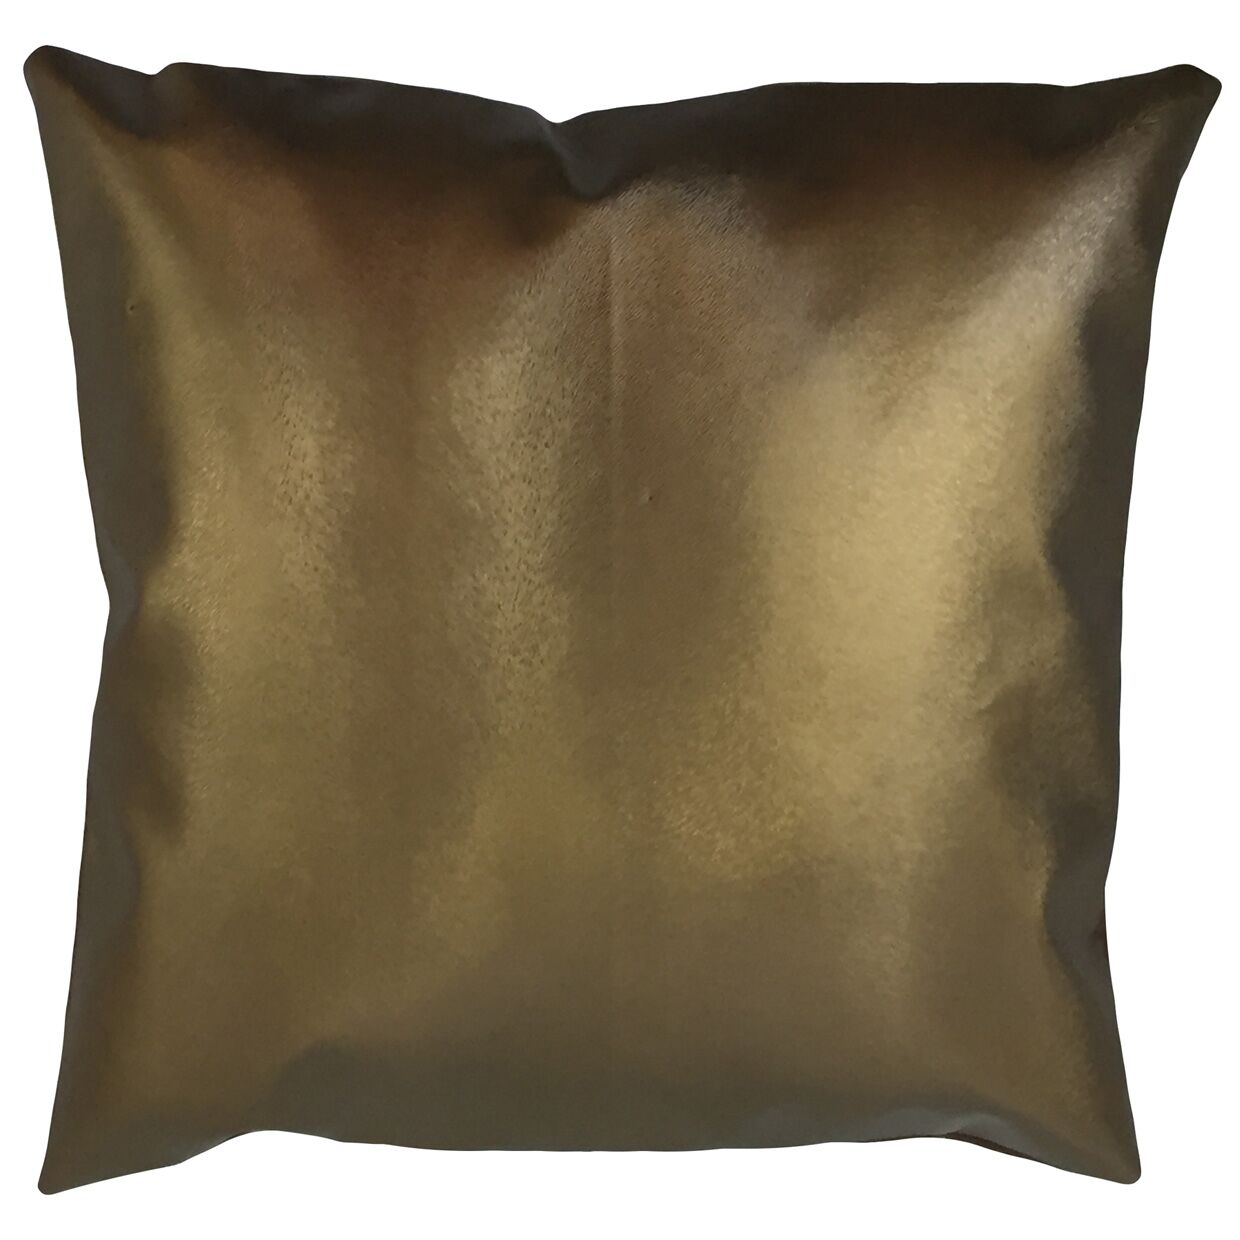 Archie Square Solid Floor Pillow